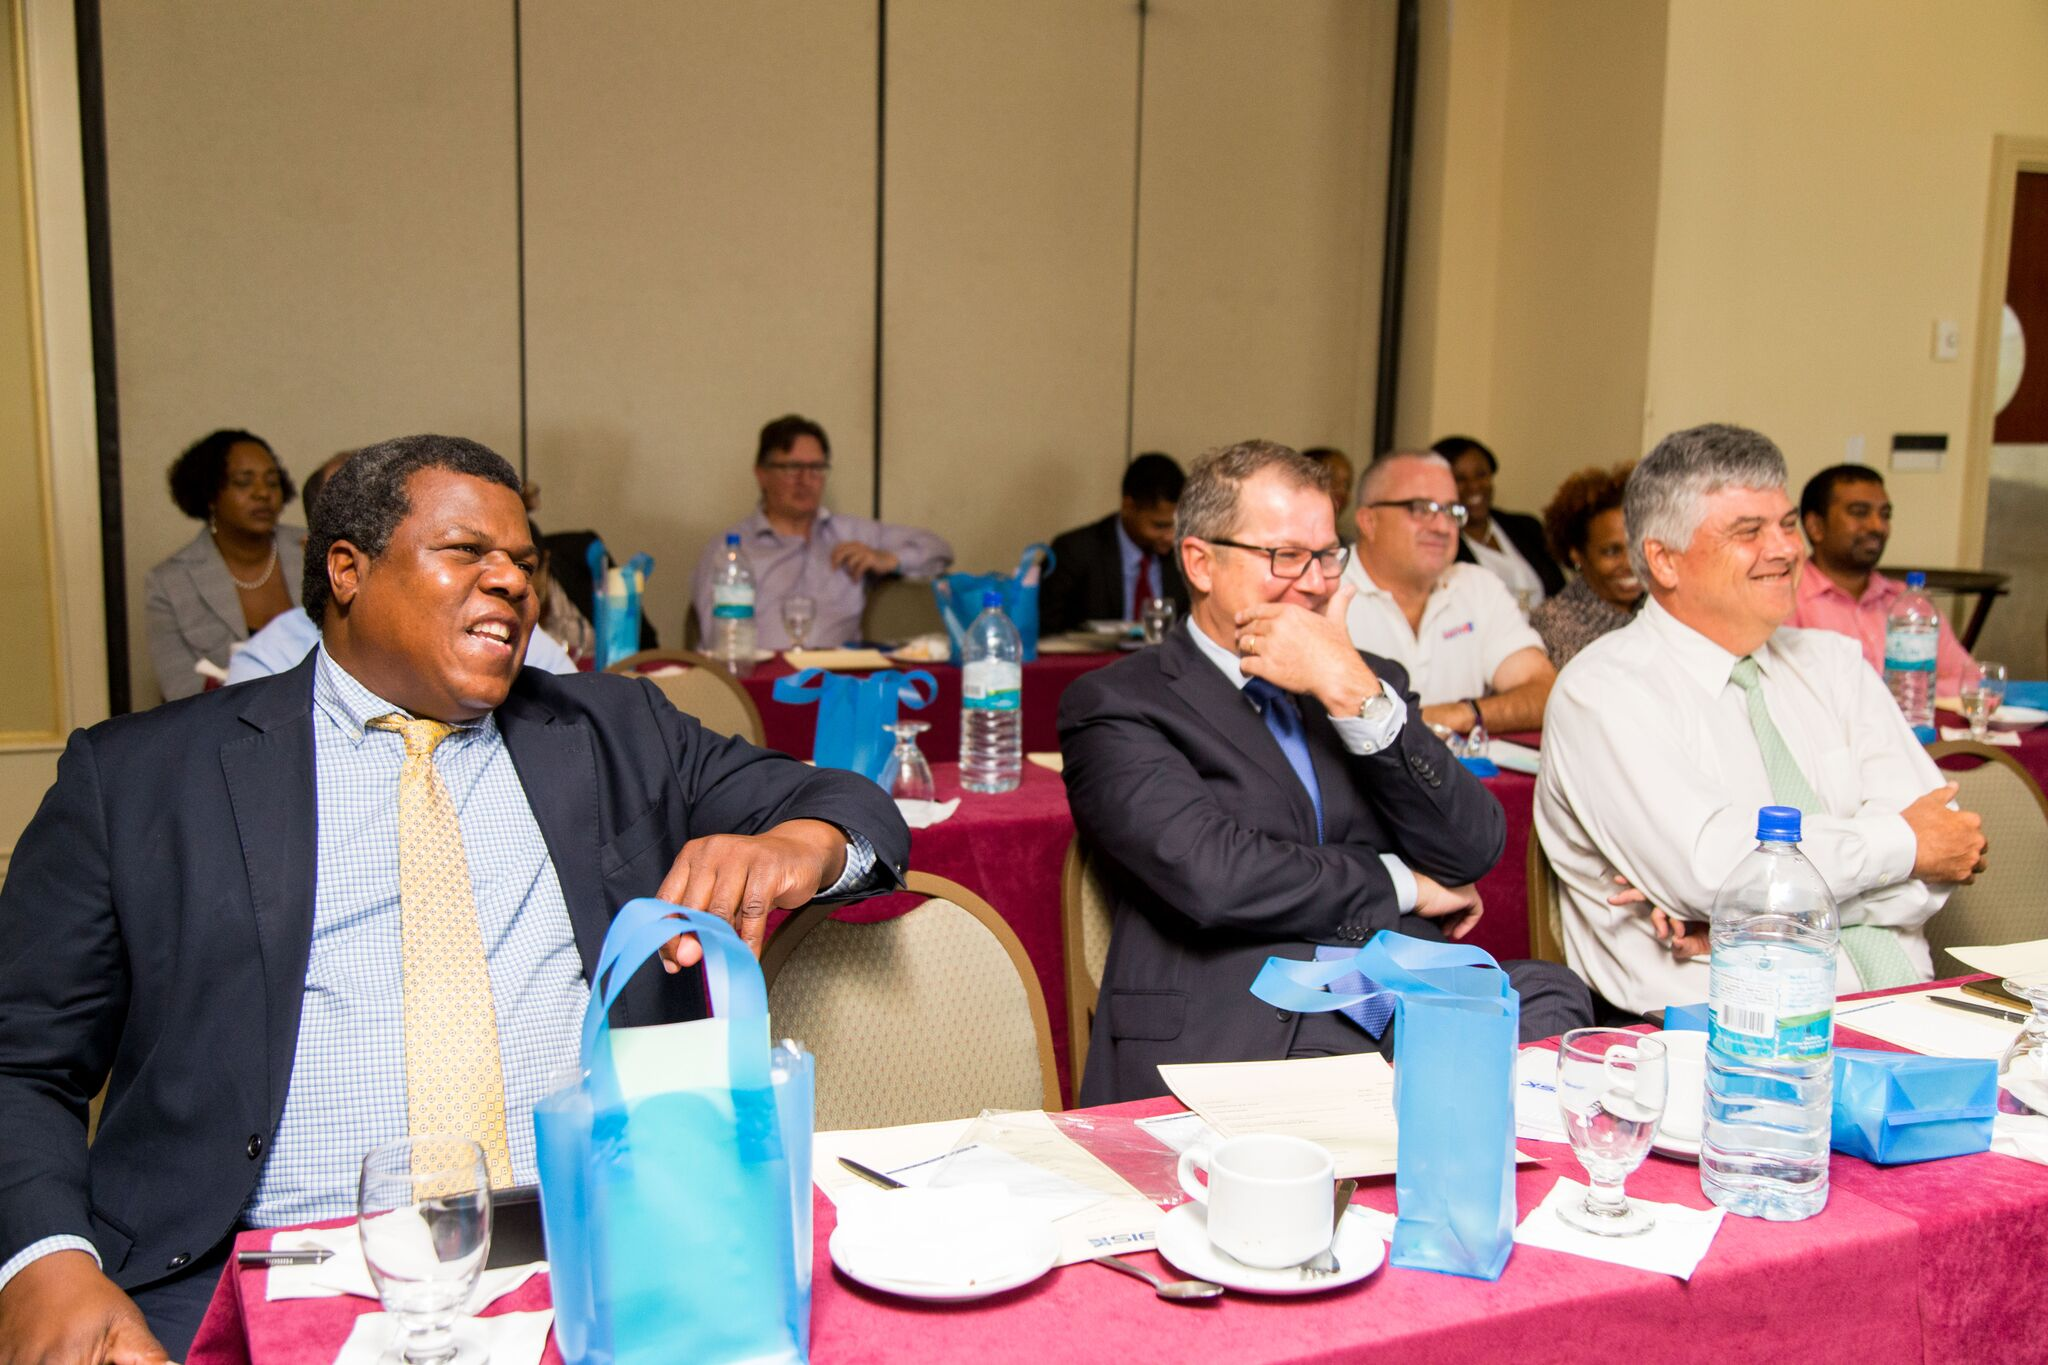 From L to R: Commonwealth Brewery Corporate Relations Director Dennis Hanna, Commonwealth Brewery Managing Director Hans Neven and Bahamas Property Fund Chairman Michael Anderson